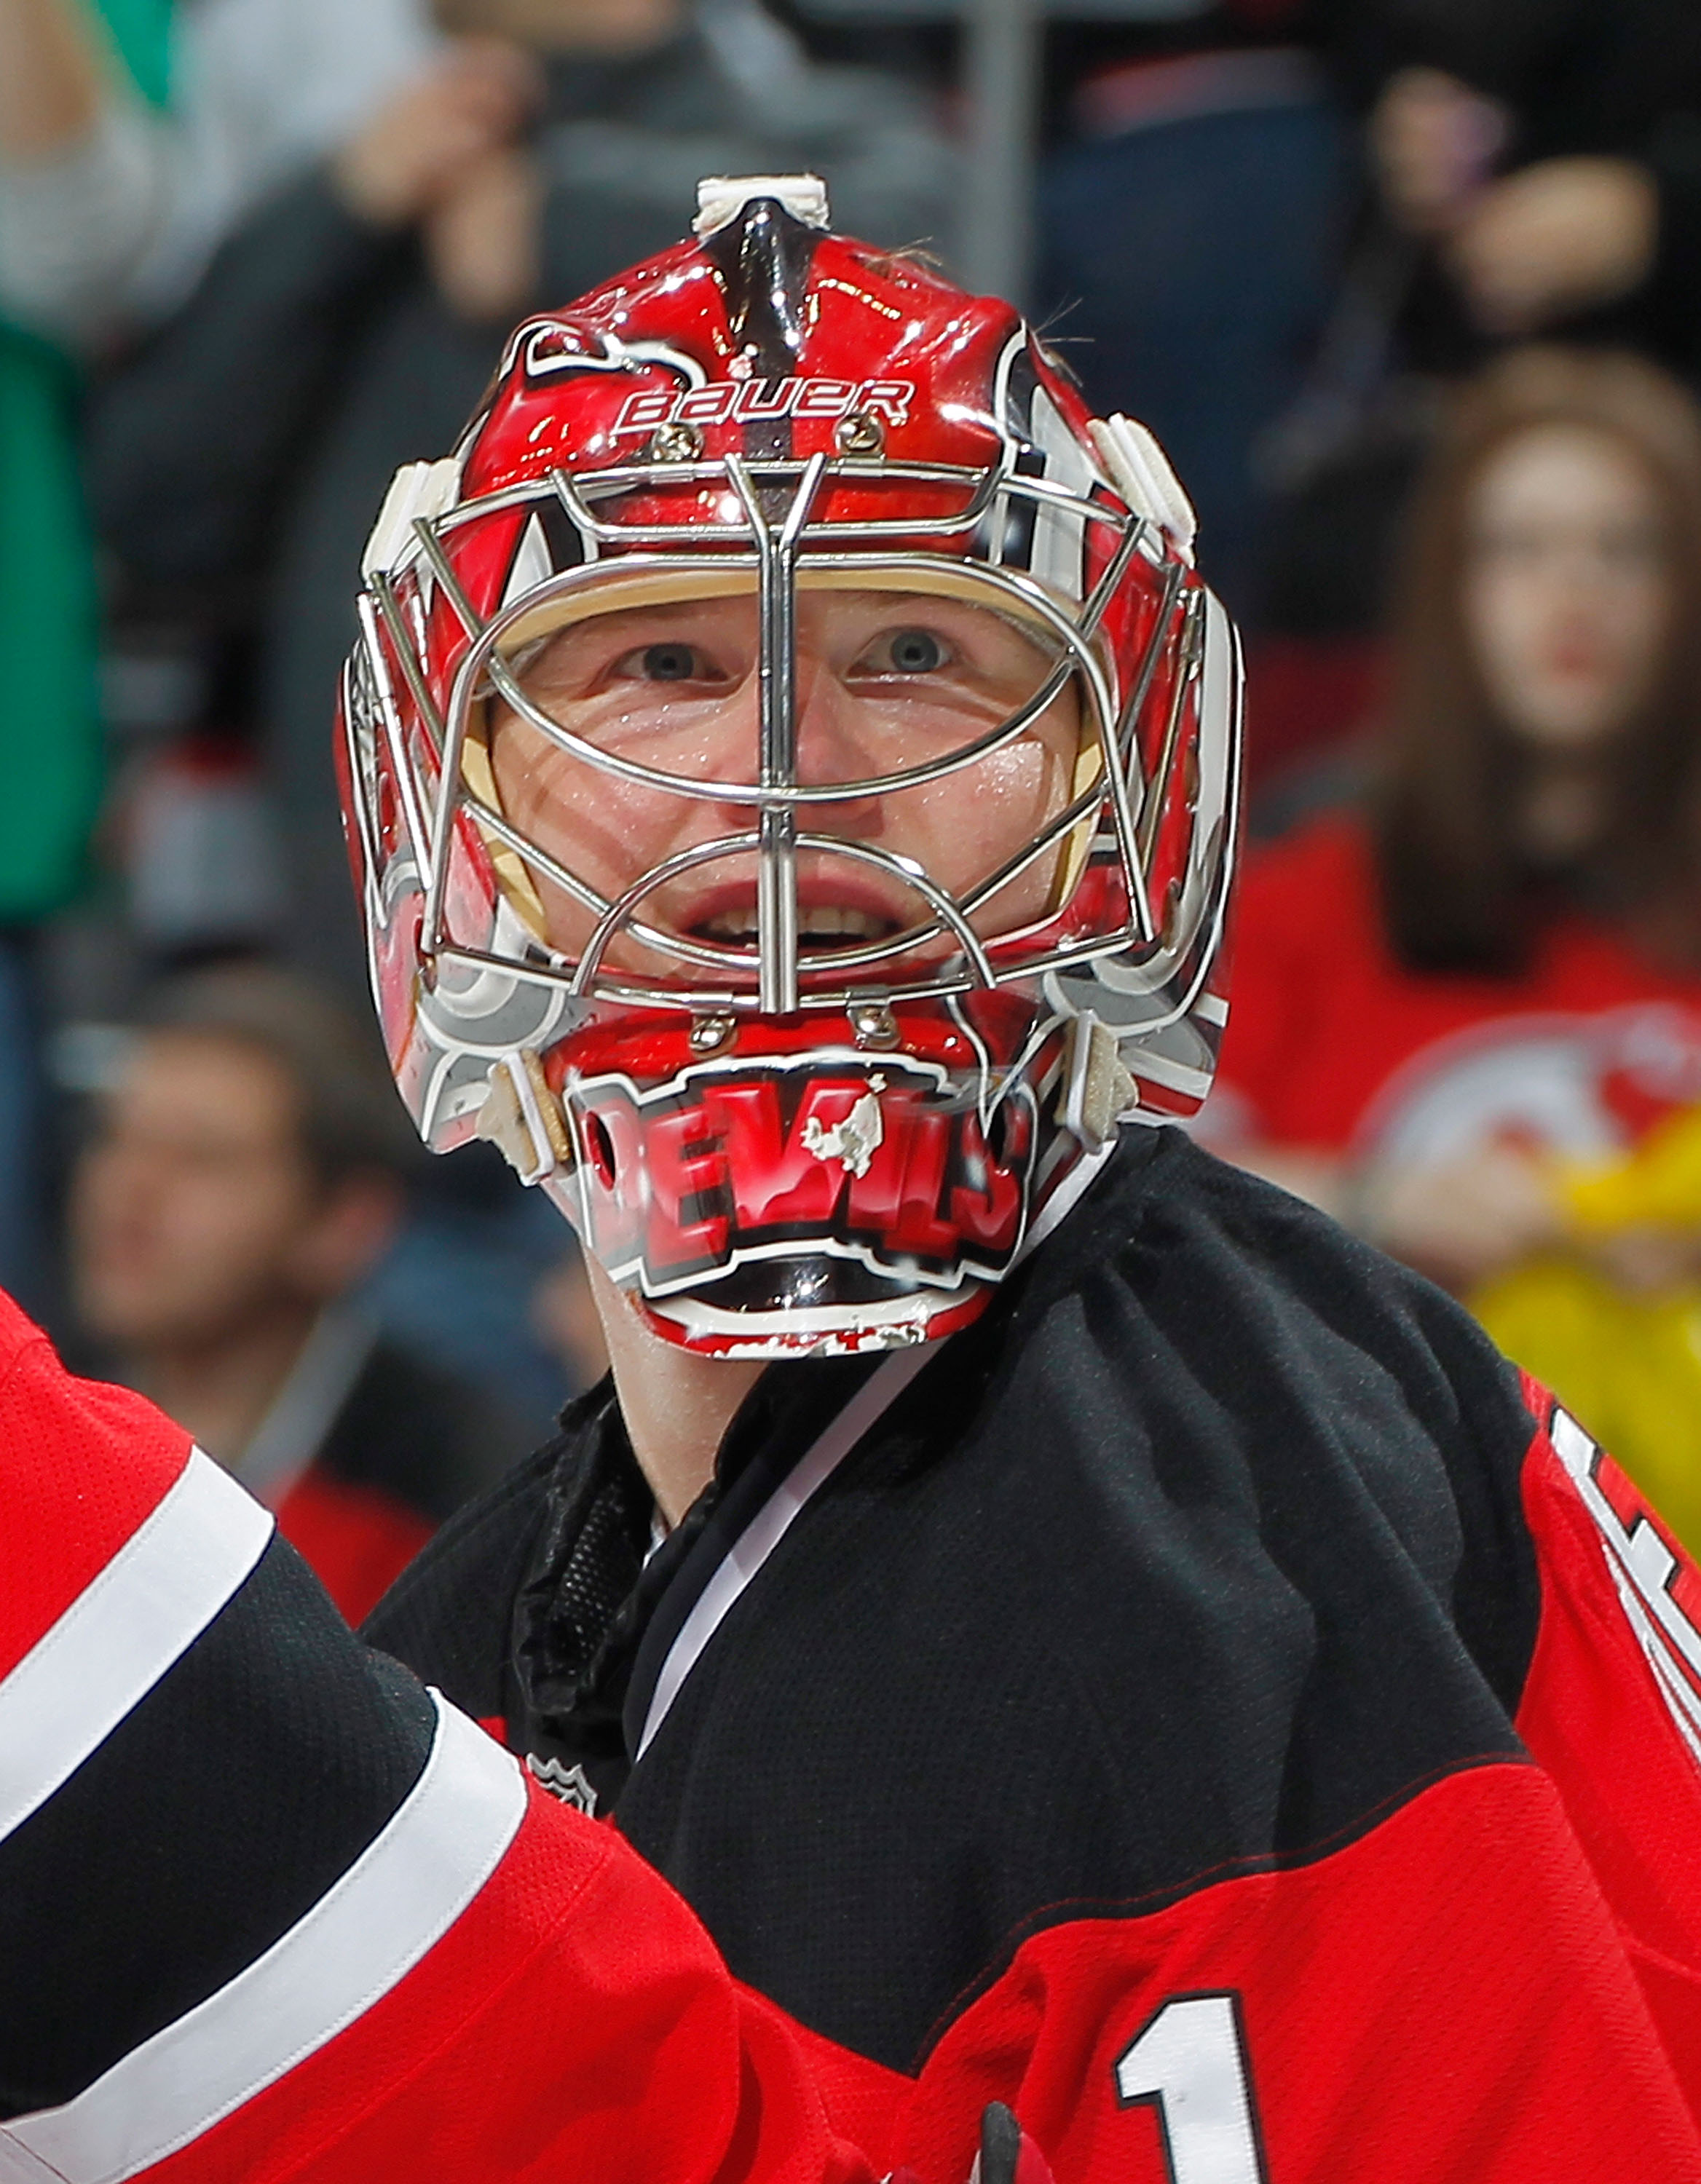 The Moose has been set loose, stopping 147 of 154 shots in his last six starts (all wins for the Devils).